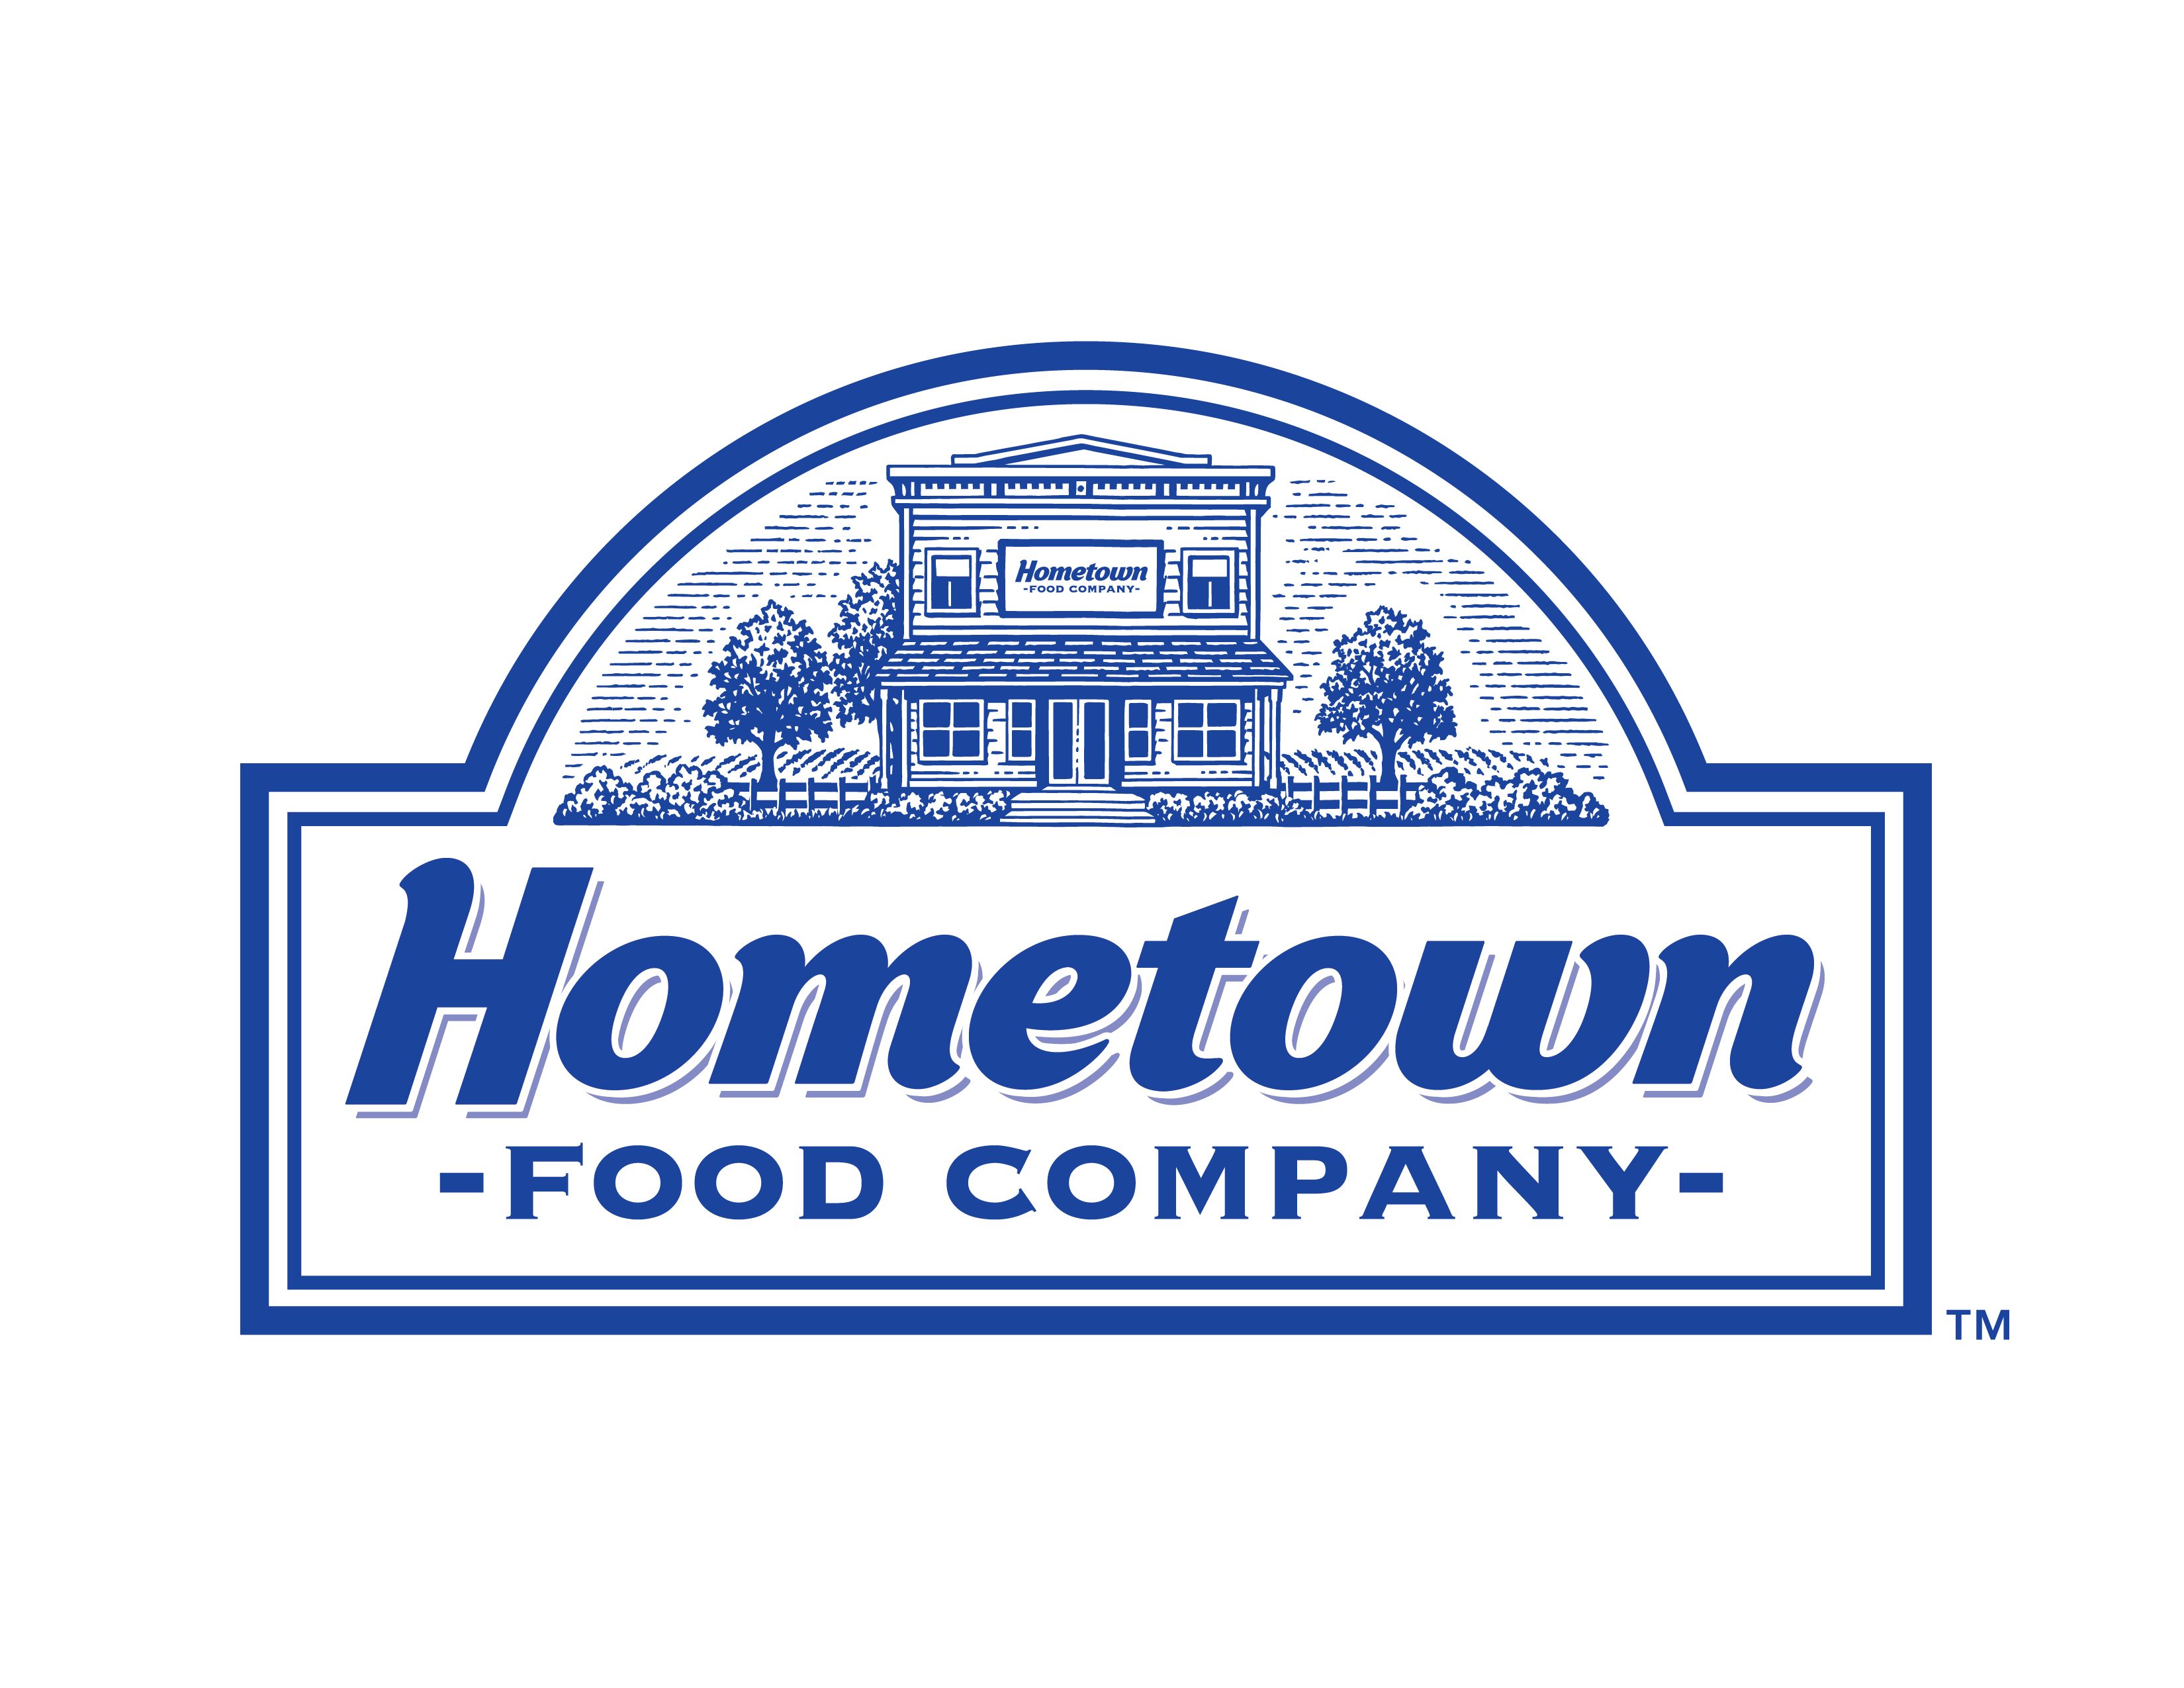 Hometown Food Company Appoints Tom Polke as President and Chief Executive Officer, January 28 2020